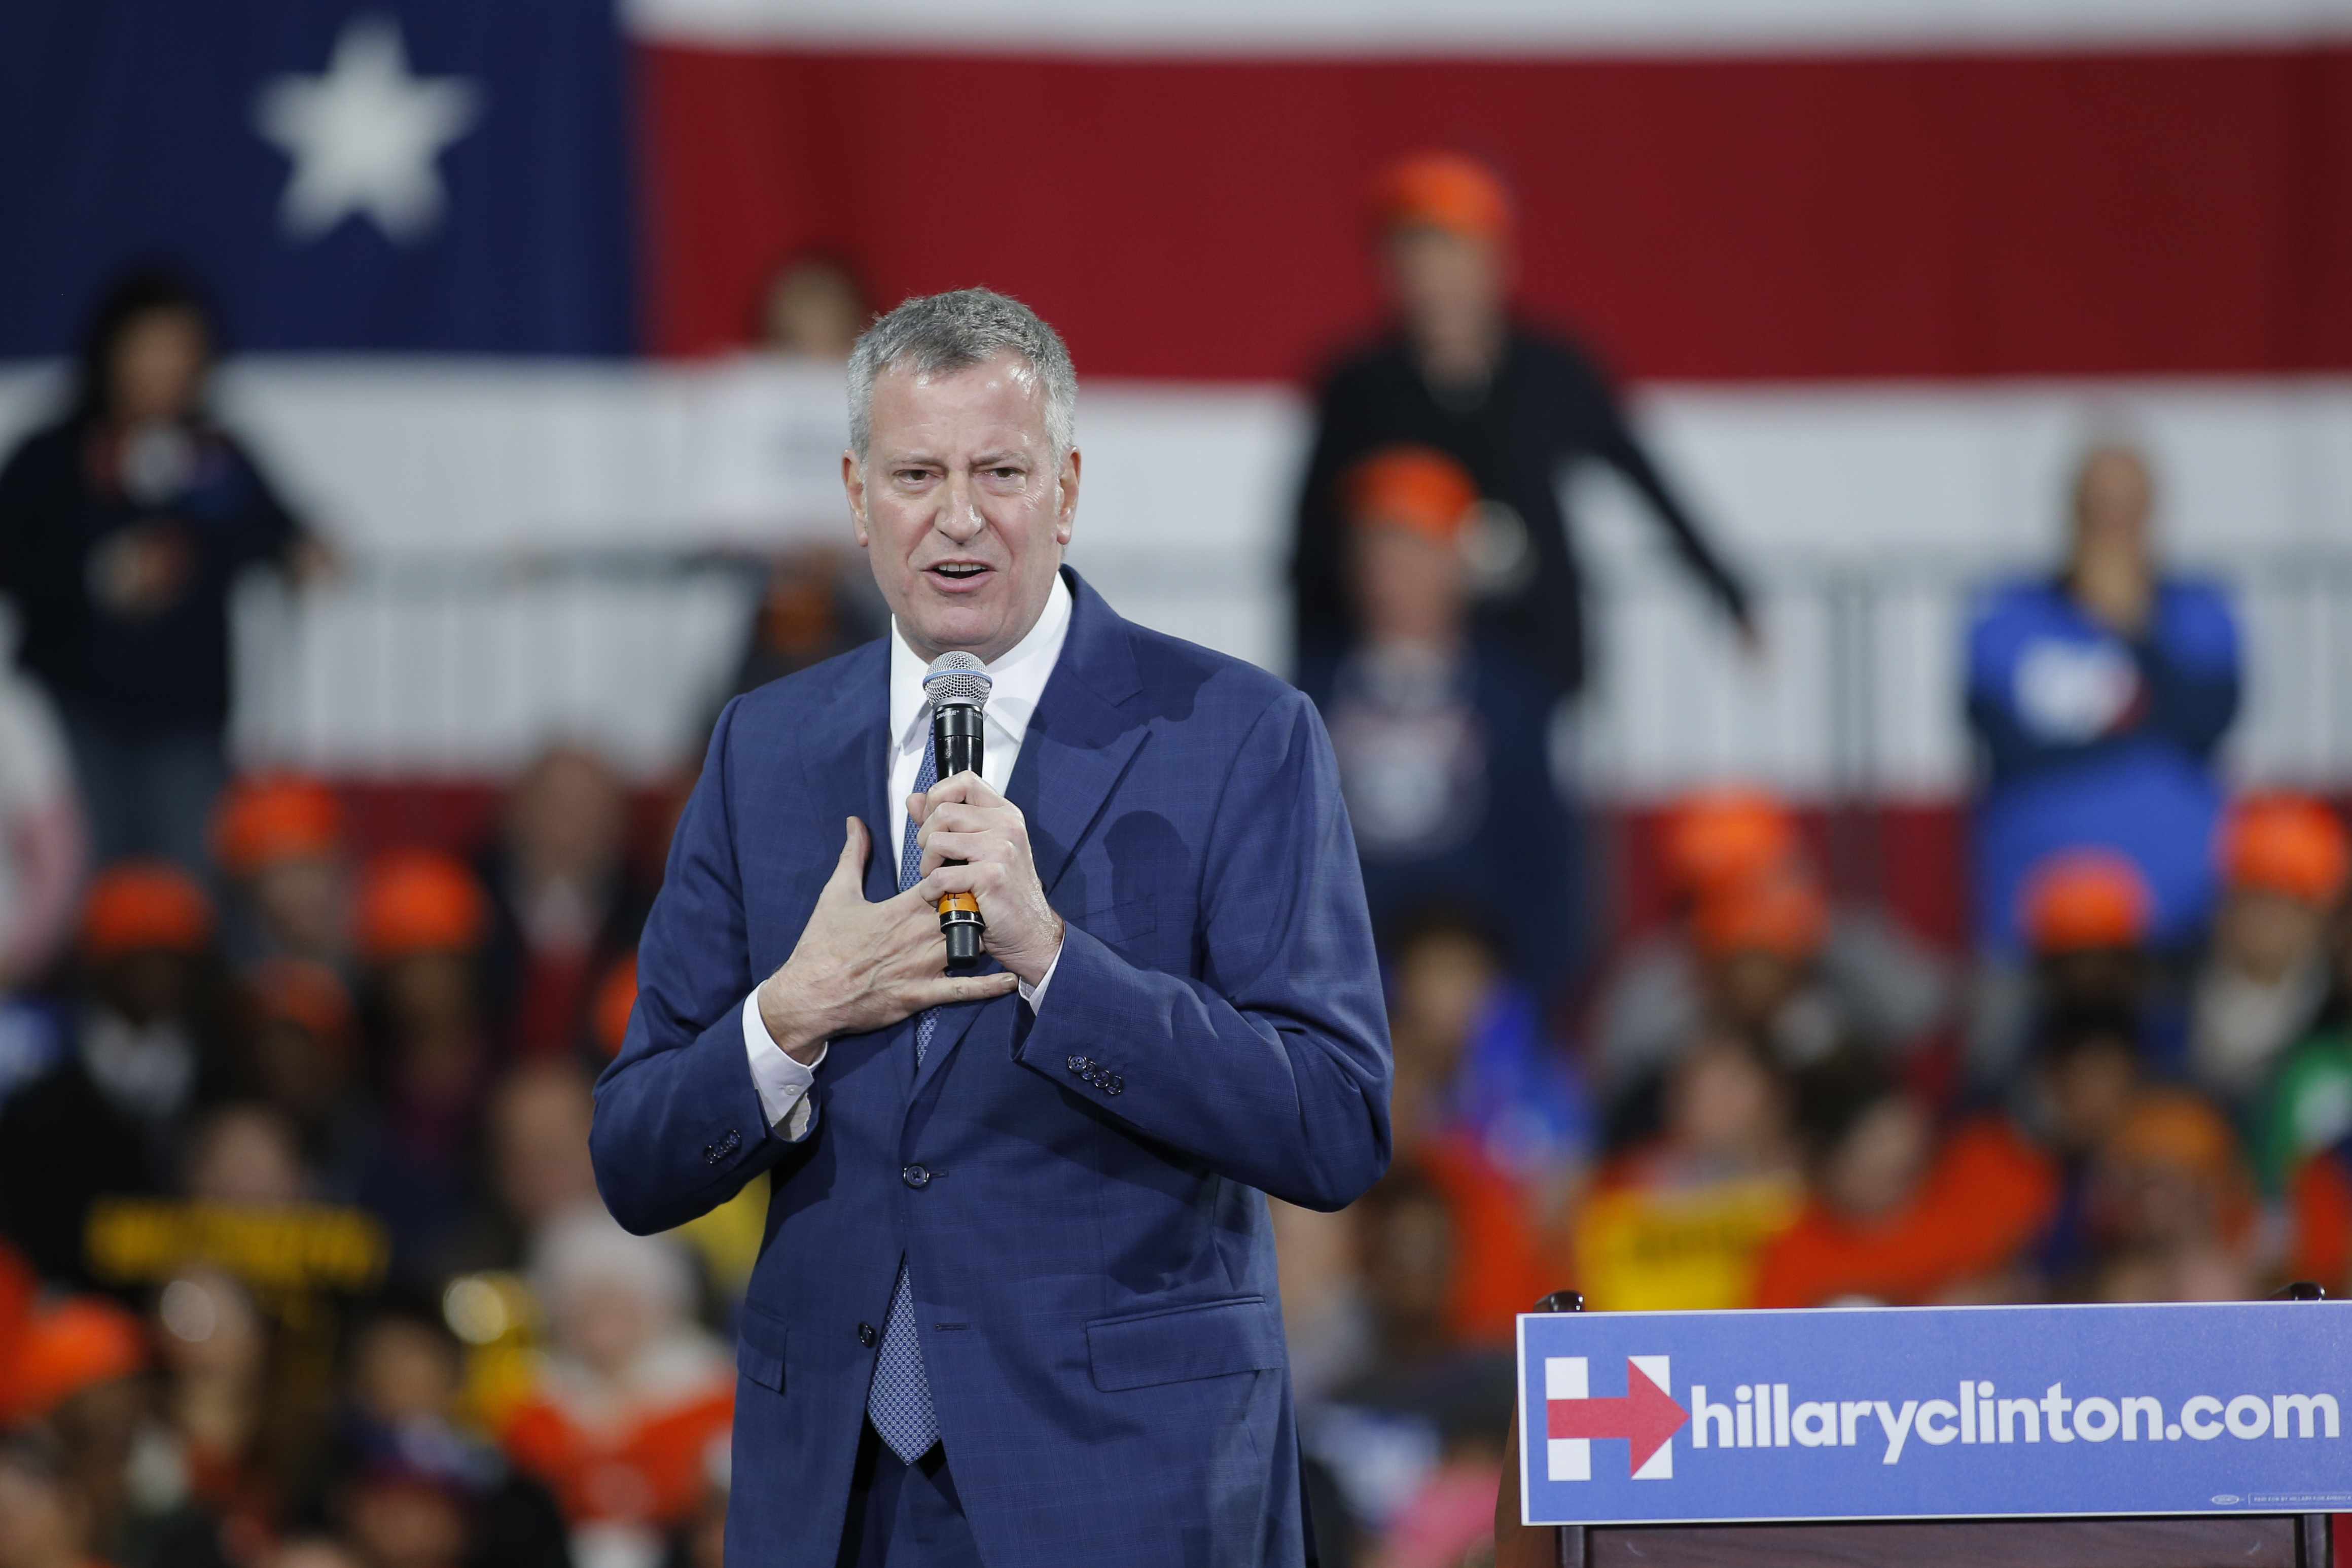 Mayor Bill de Blasio at a Hillary Clinton rally this month.